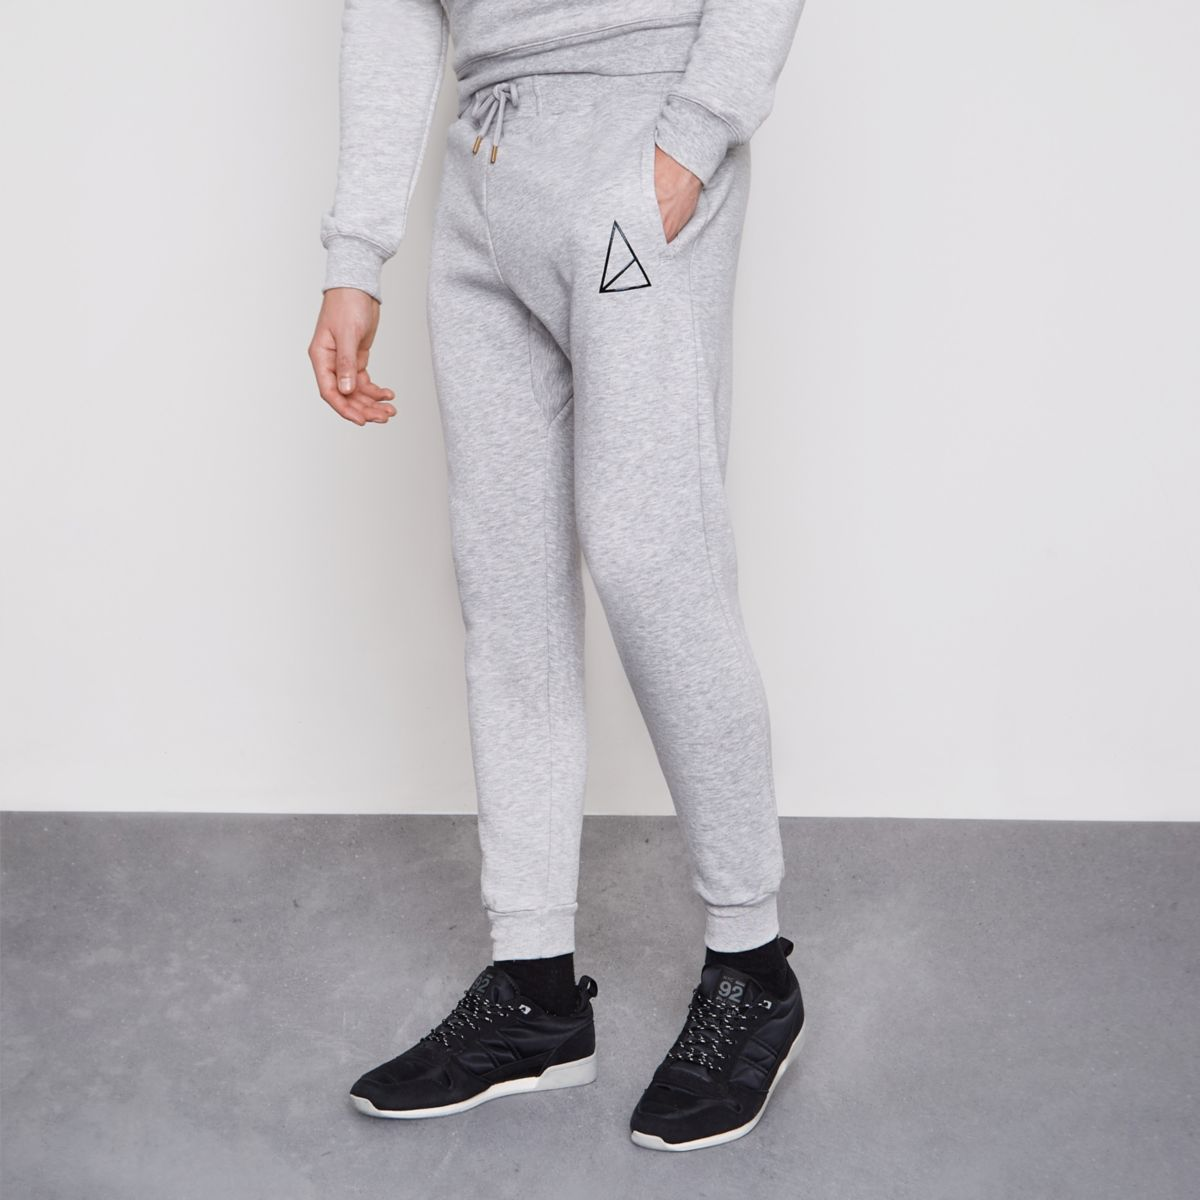 Golden Equation grey joggers